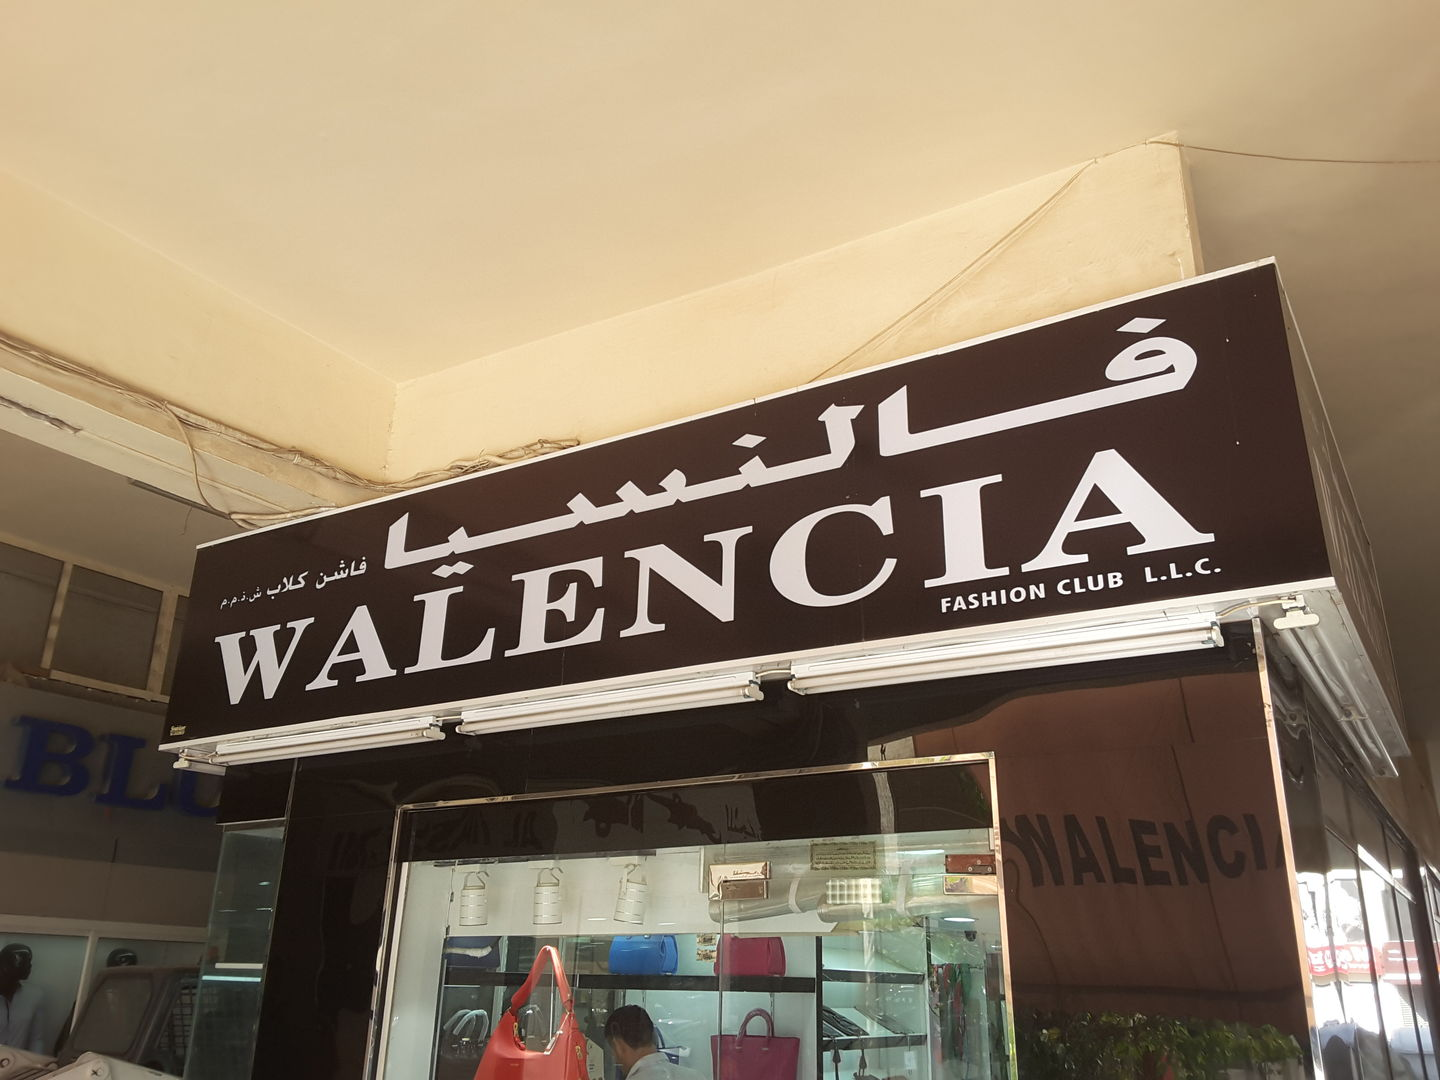 HiDubai-business-walencia-fashion-club-shopping-fashion-accessories-al-karama-dubai-2